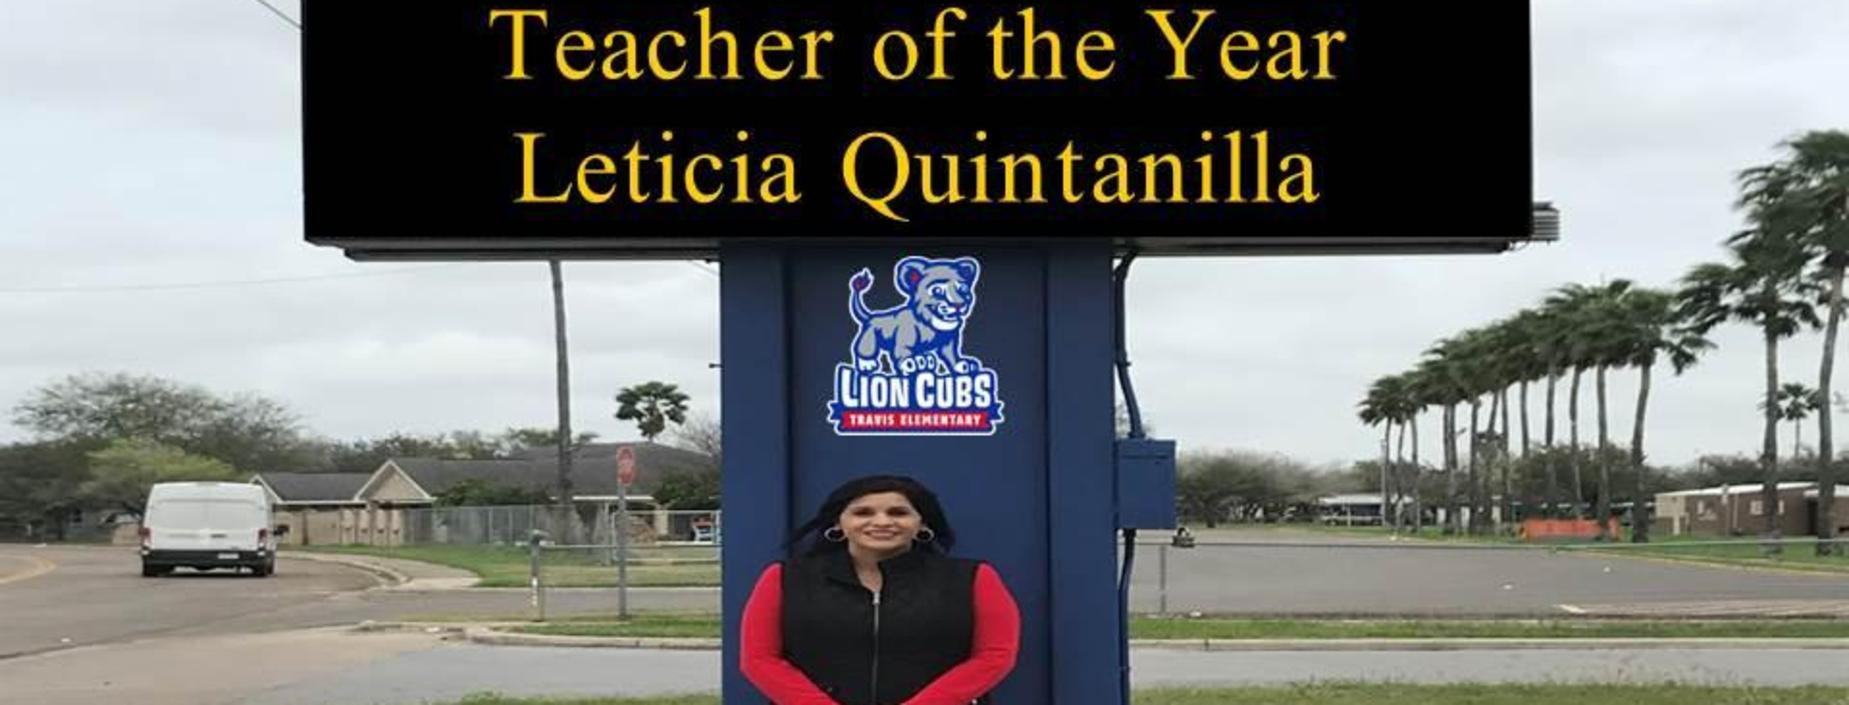 Congratulations Teacher of the Year Mrs. L. Quintanilla!